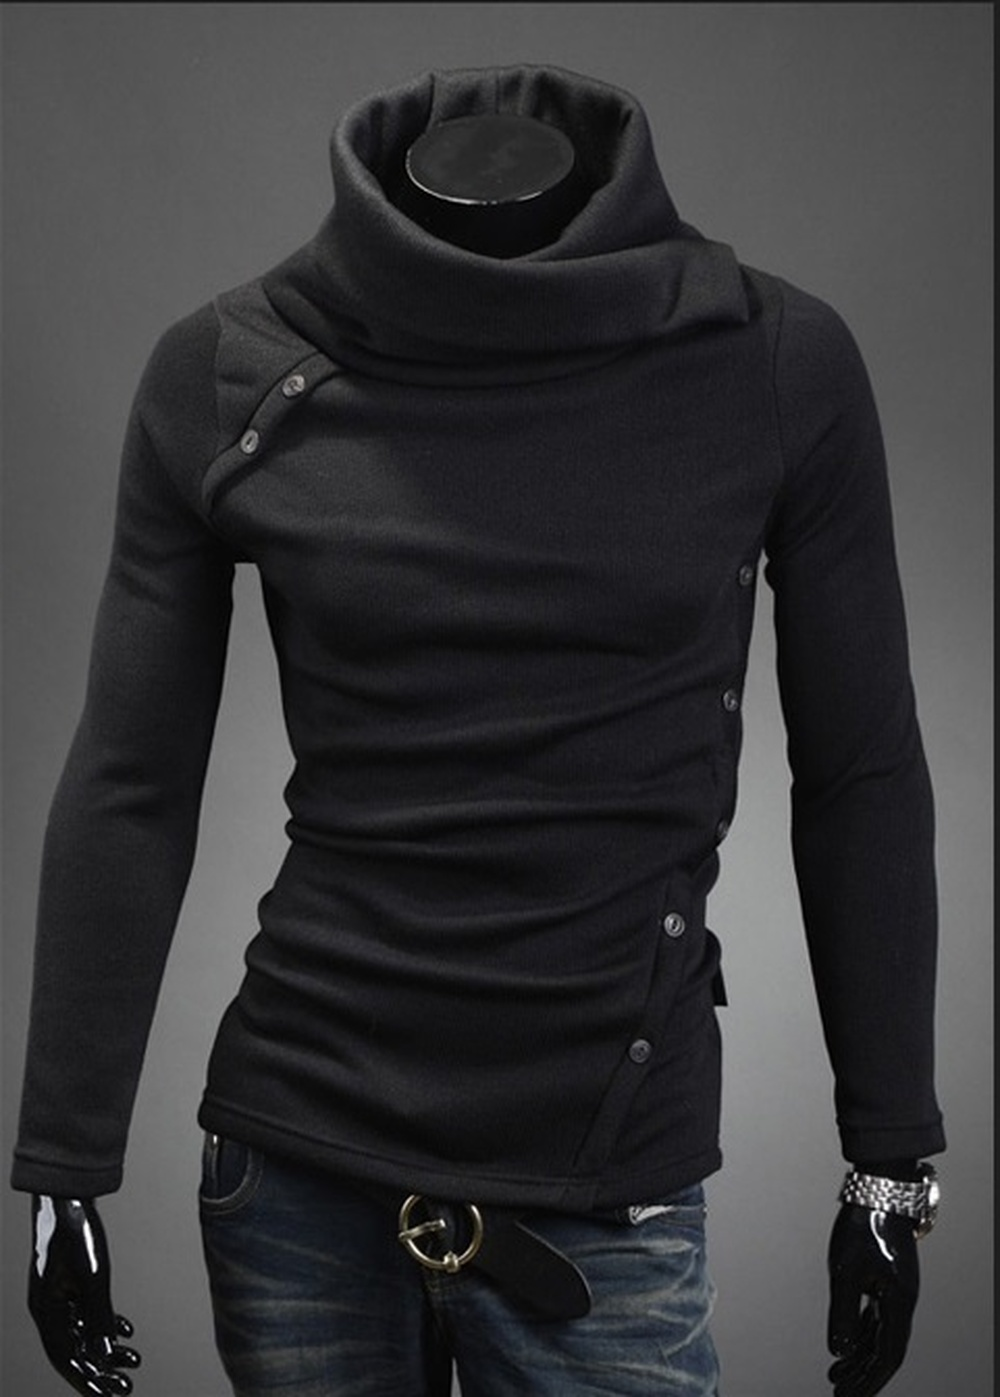 Zogaa 2019 Brand New mens pullovers solid color thin wool sweater turtleneck plus size sweater men's fashion Thermal long sleeve